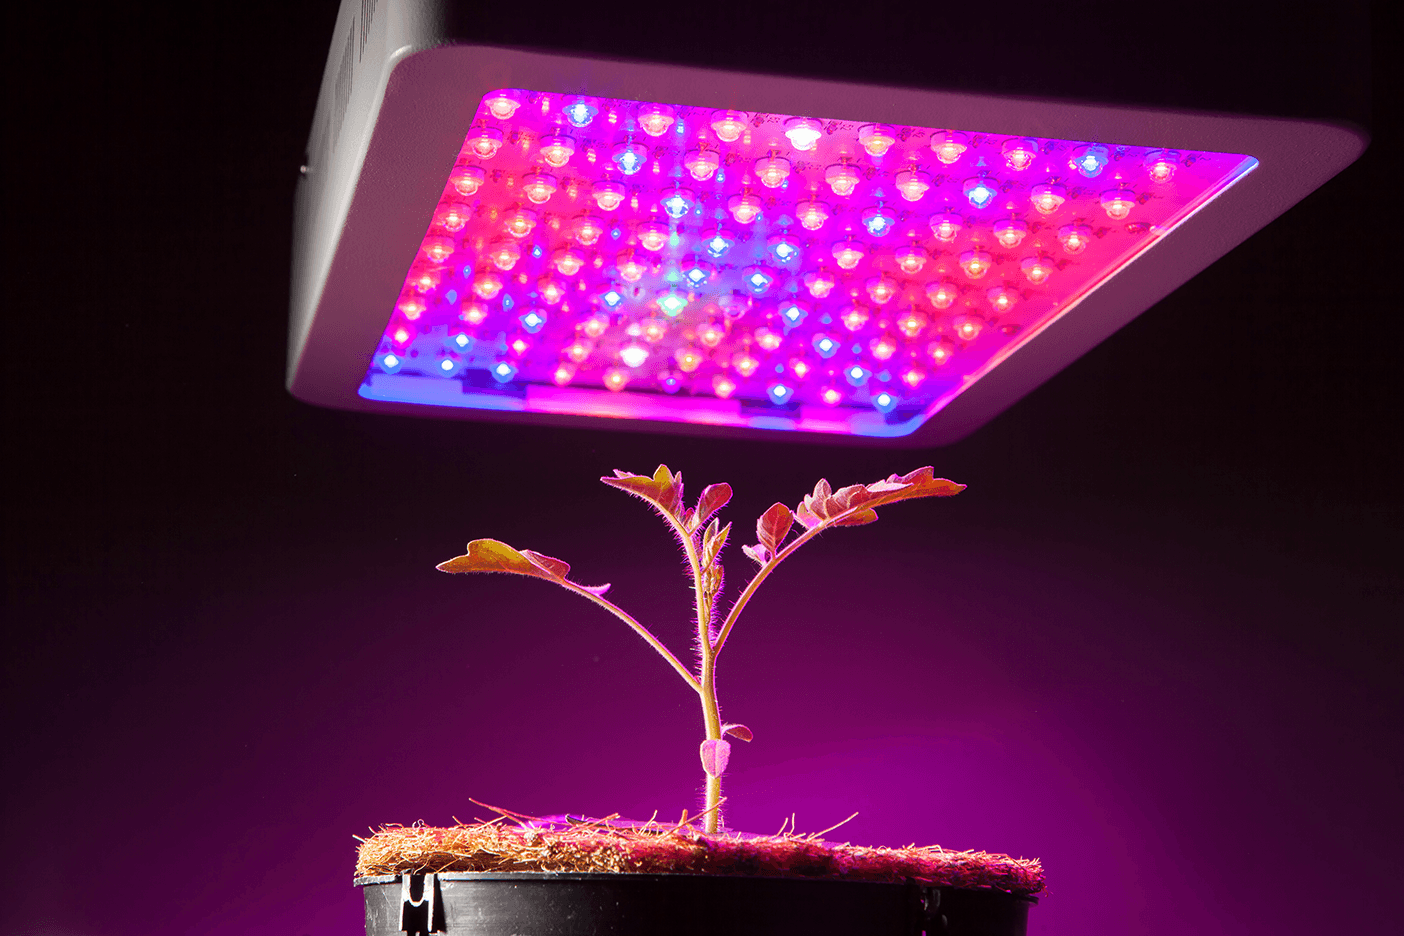 Getting to know grow lights